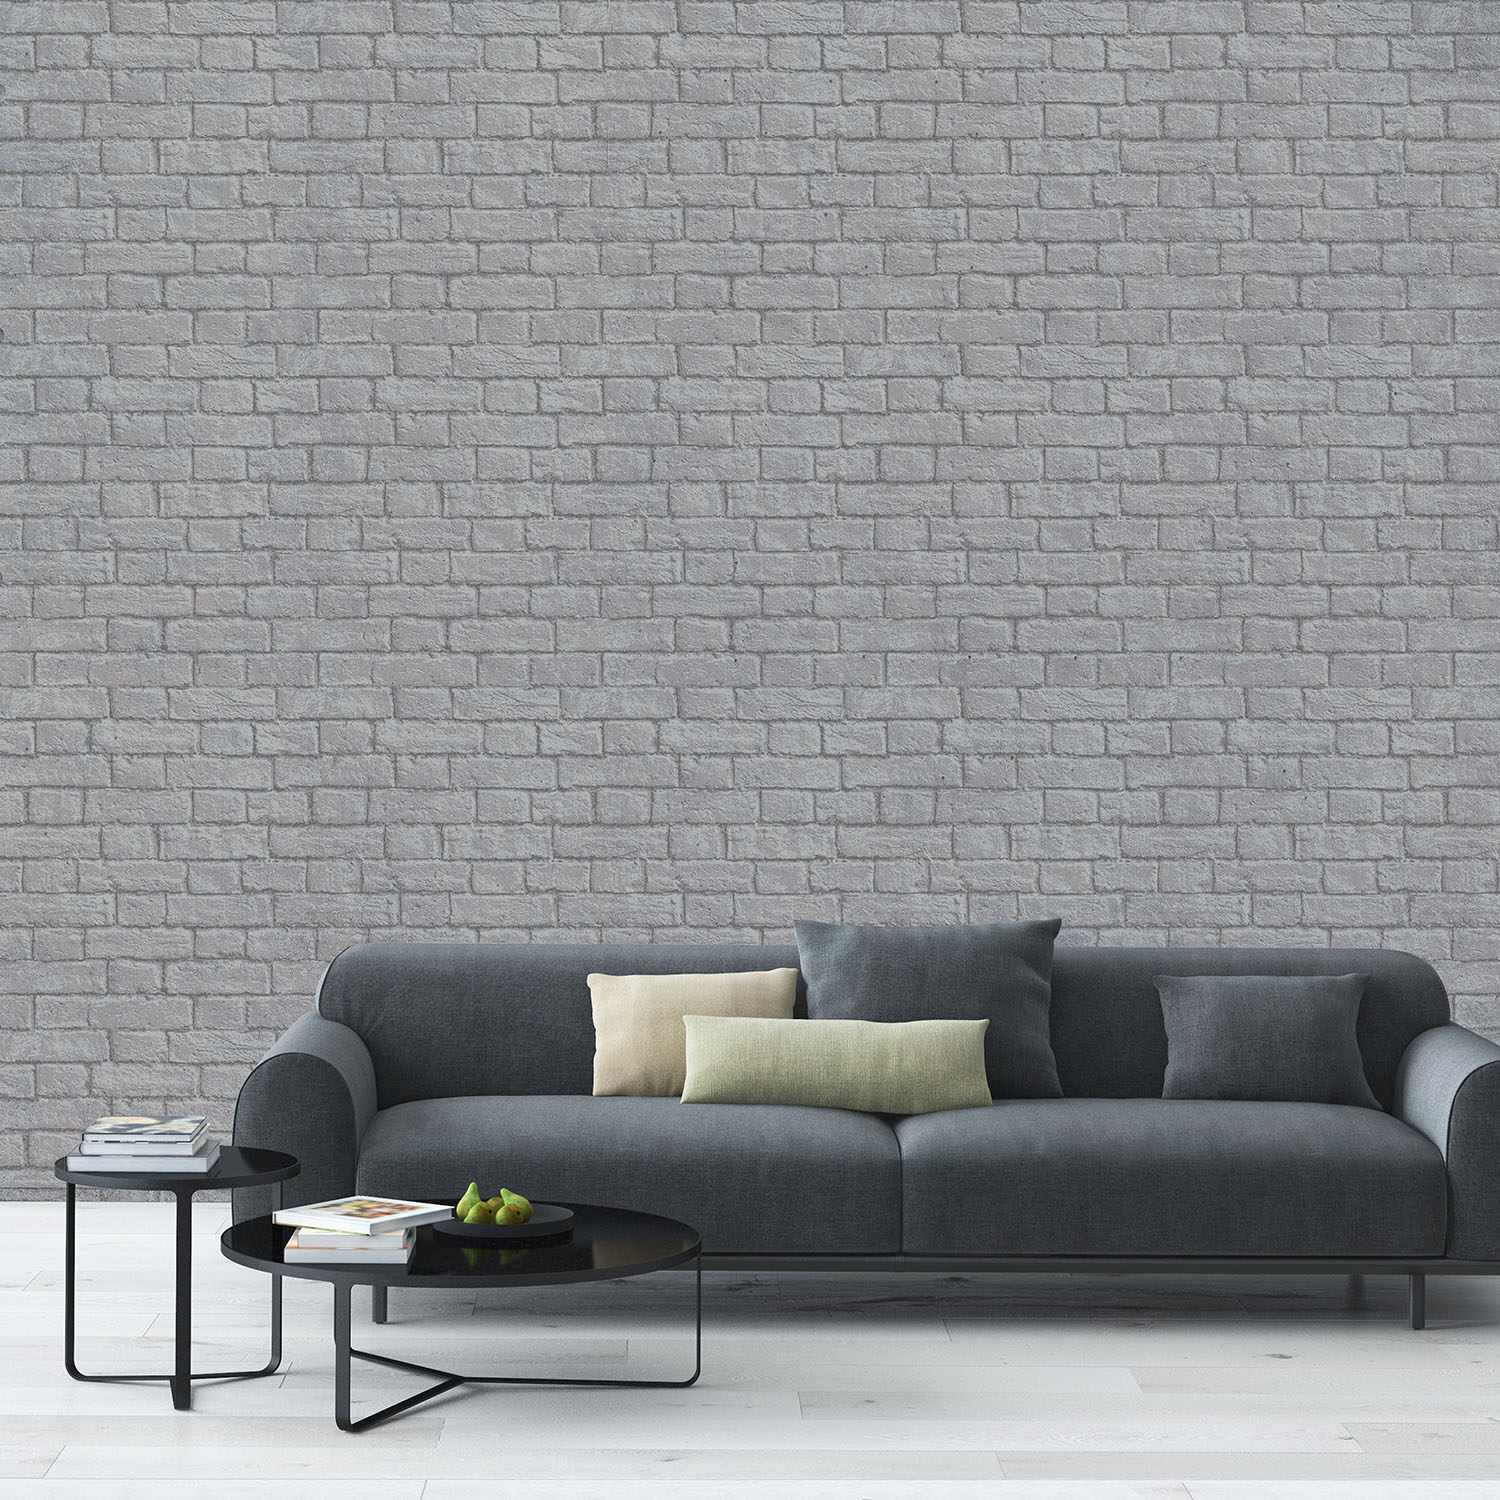 Stylish brick effect wallpaper designs brick wallpaper ideas Grey wallpaper living room